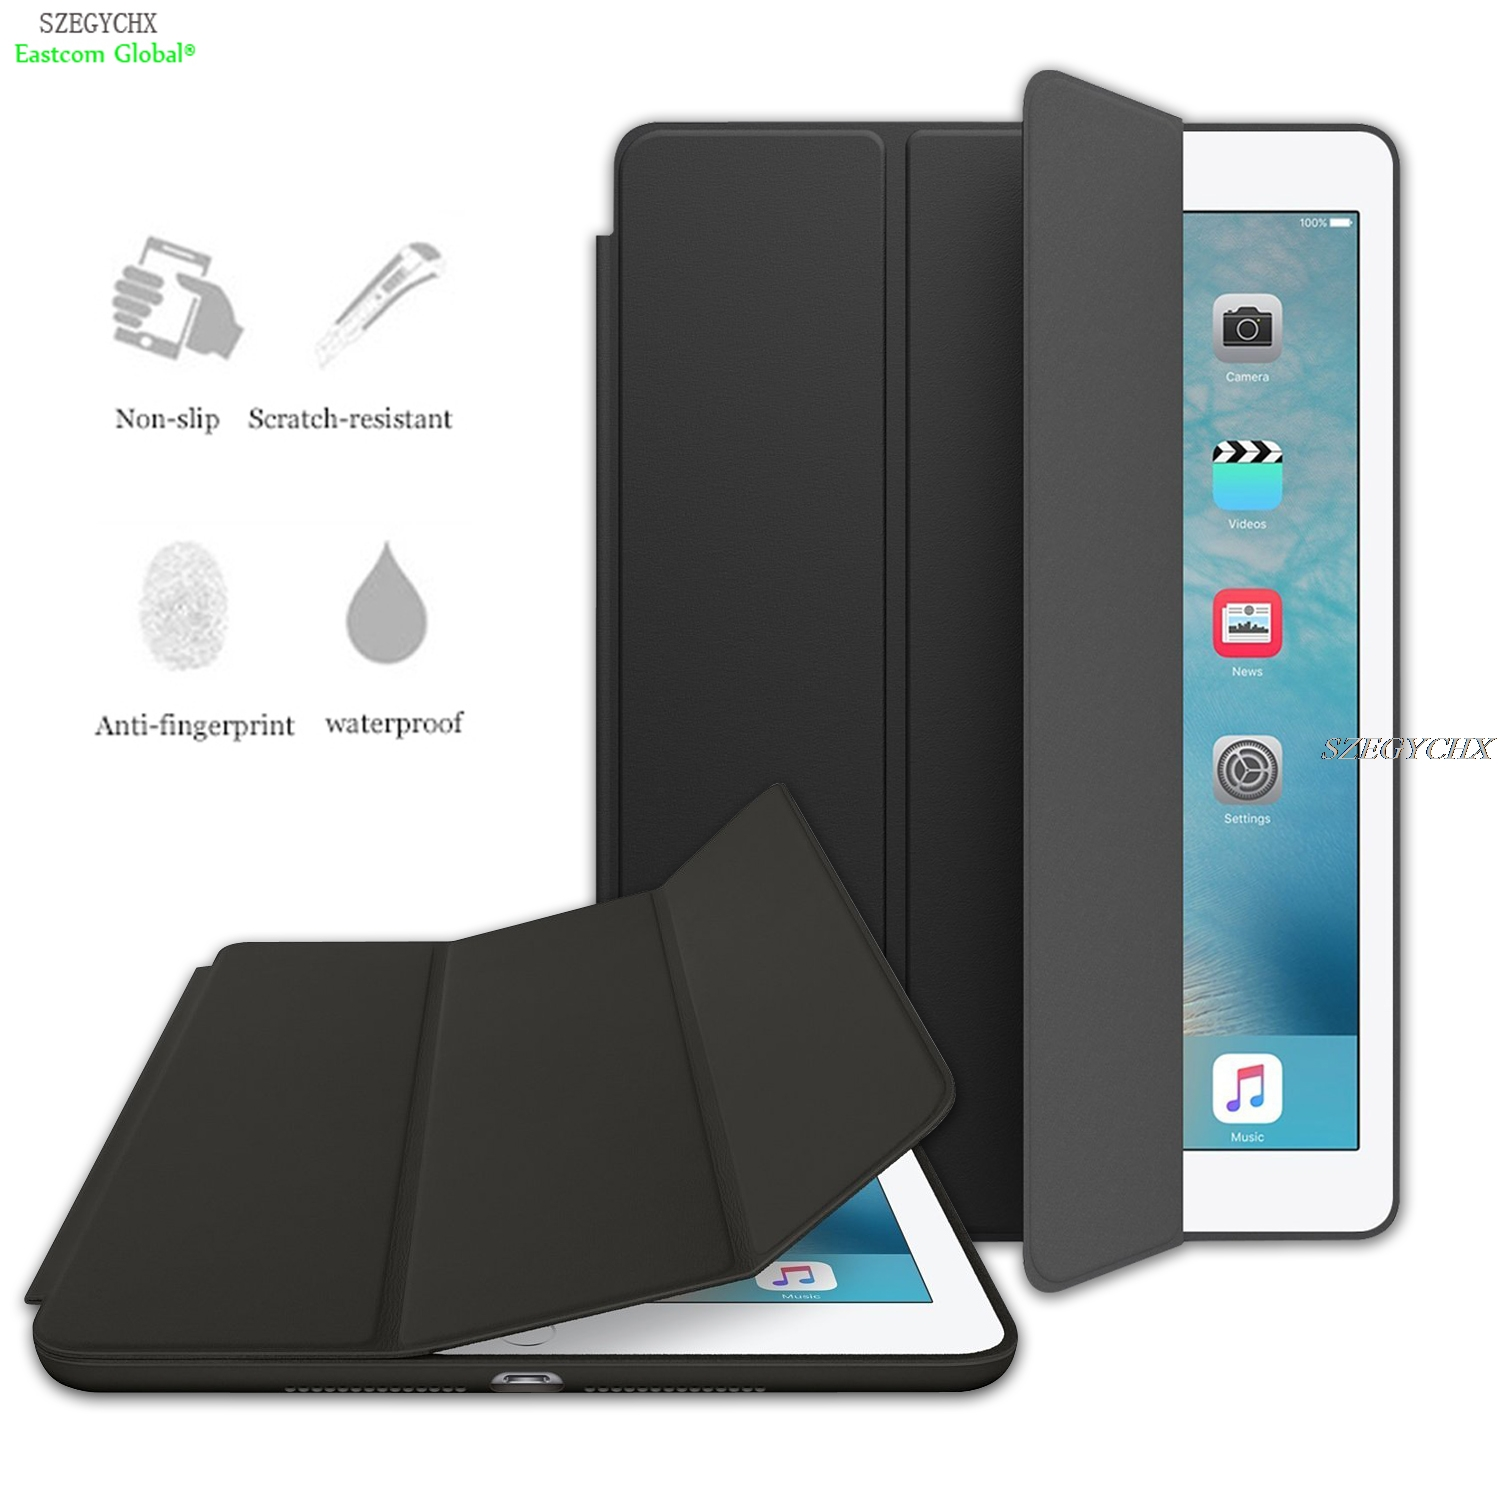 Case For apple iPad Air 1 Original 1:1 Ultra Slim Smart Cover Smart Stand For iPad 5 Auto Wake / Sleep with LOGO smart cover case for ipad kaku original official leather ultra thin stand cases for apple ipad air 1 2with wake up free shipping